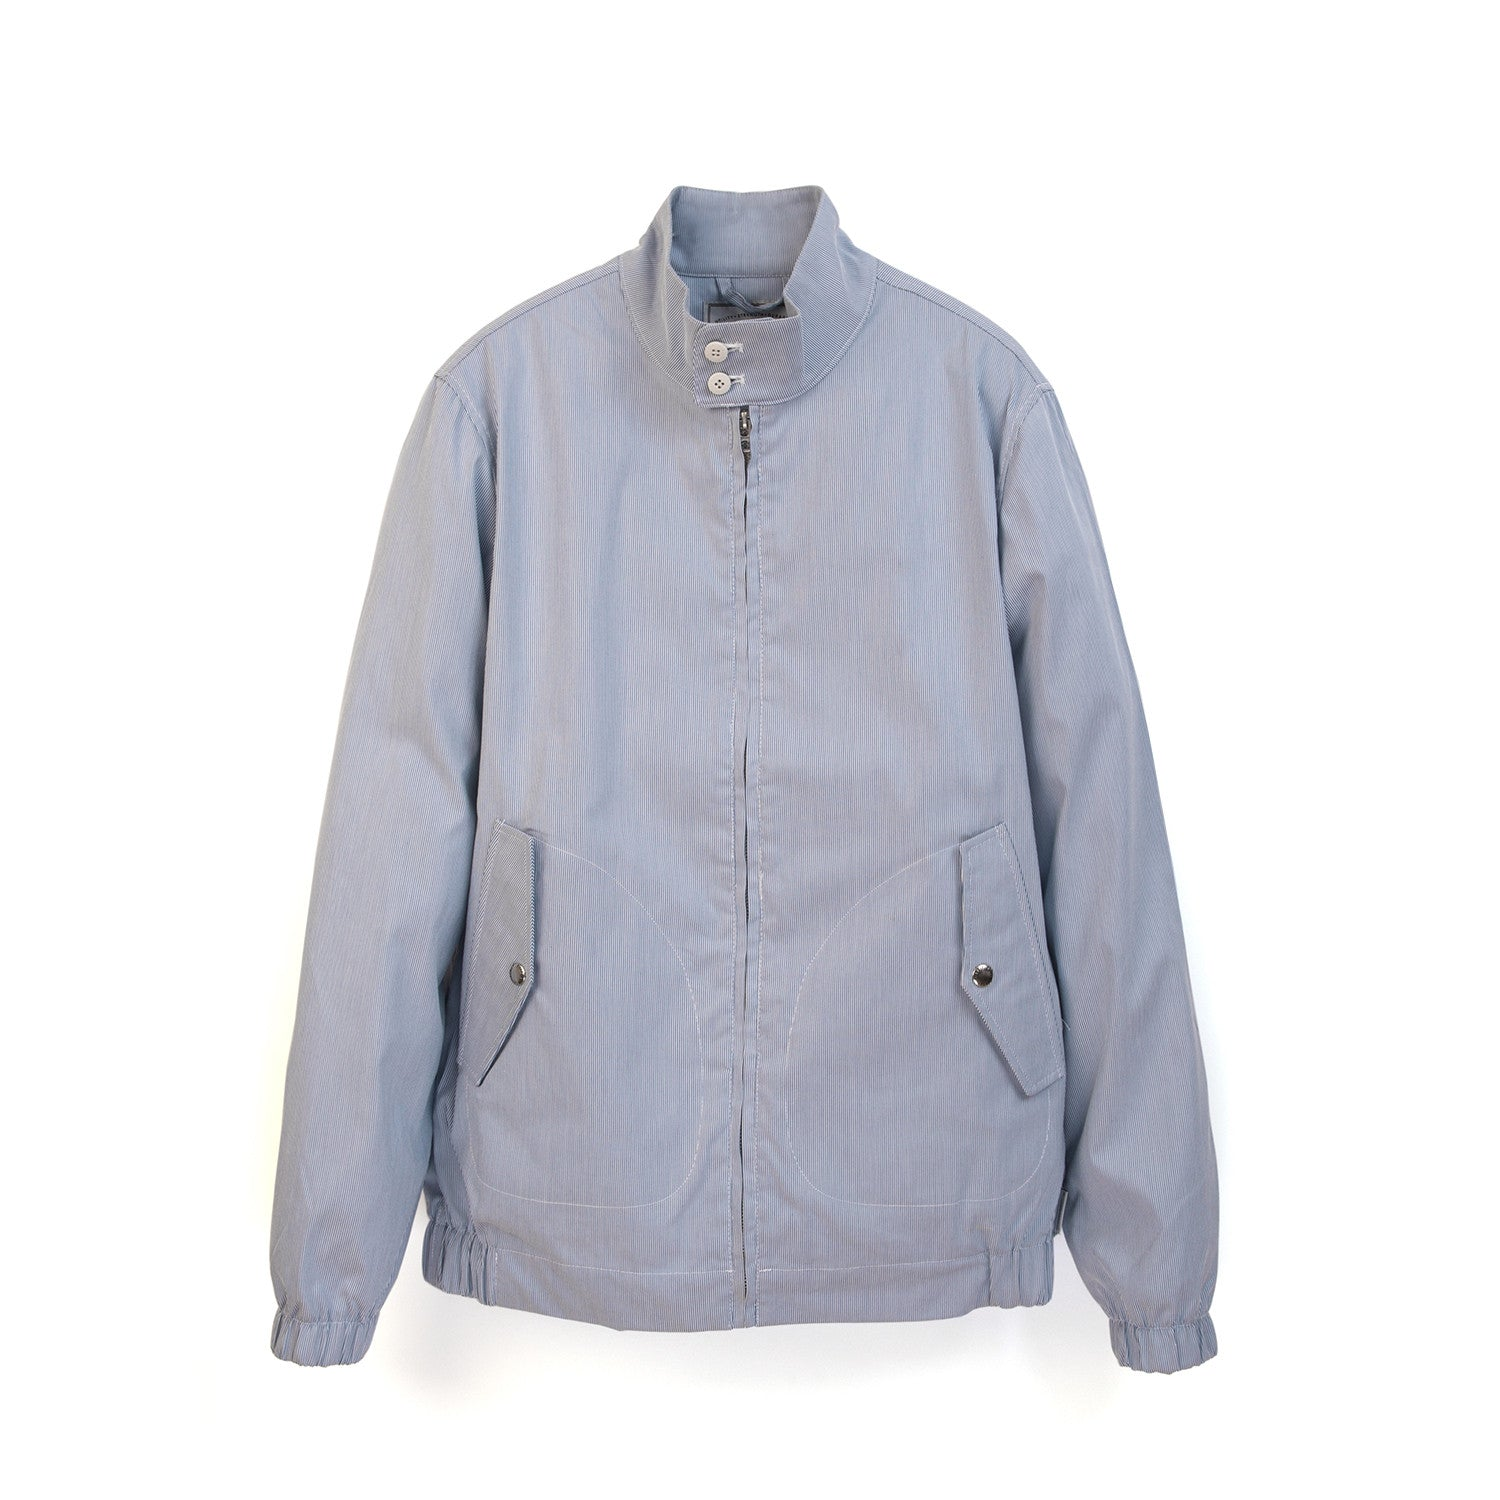 Penfield Mens Seaford Seersucker Jacket White/Blue